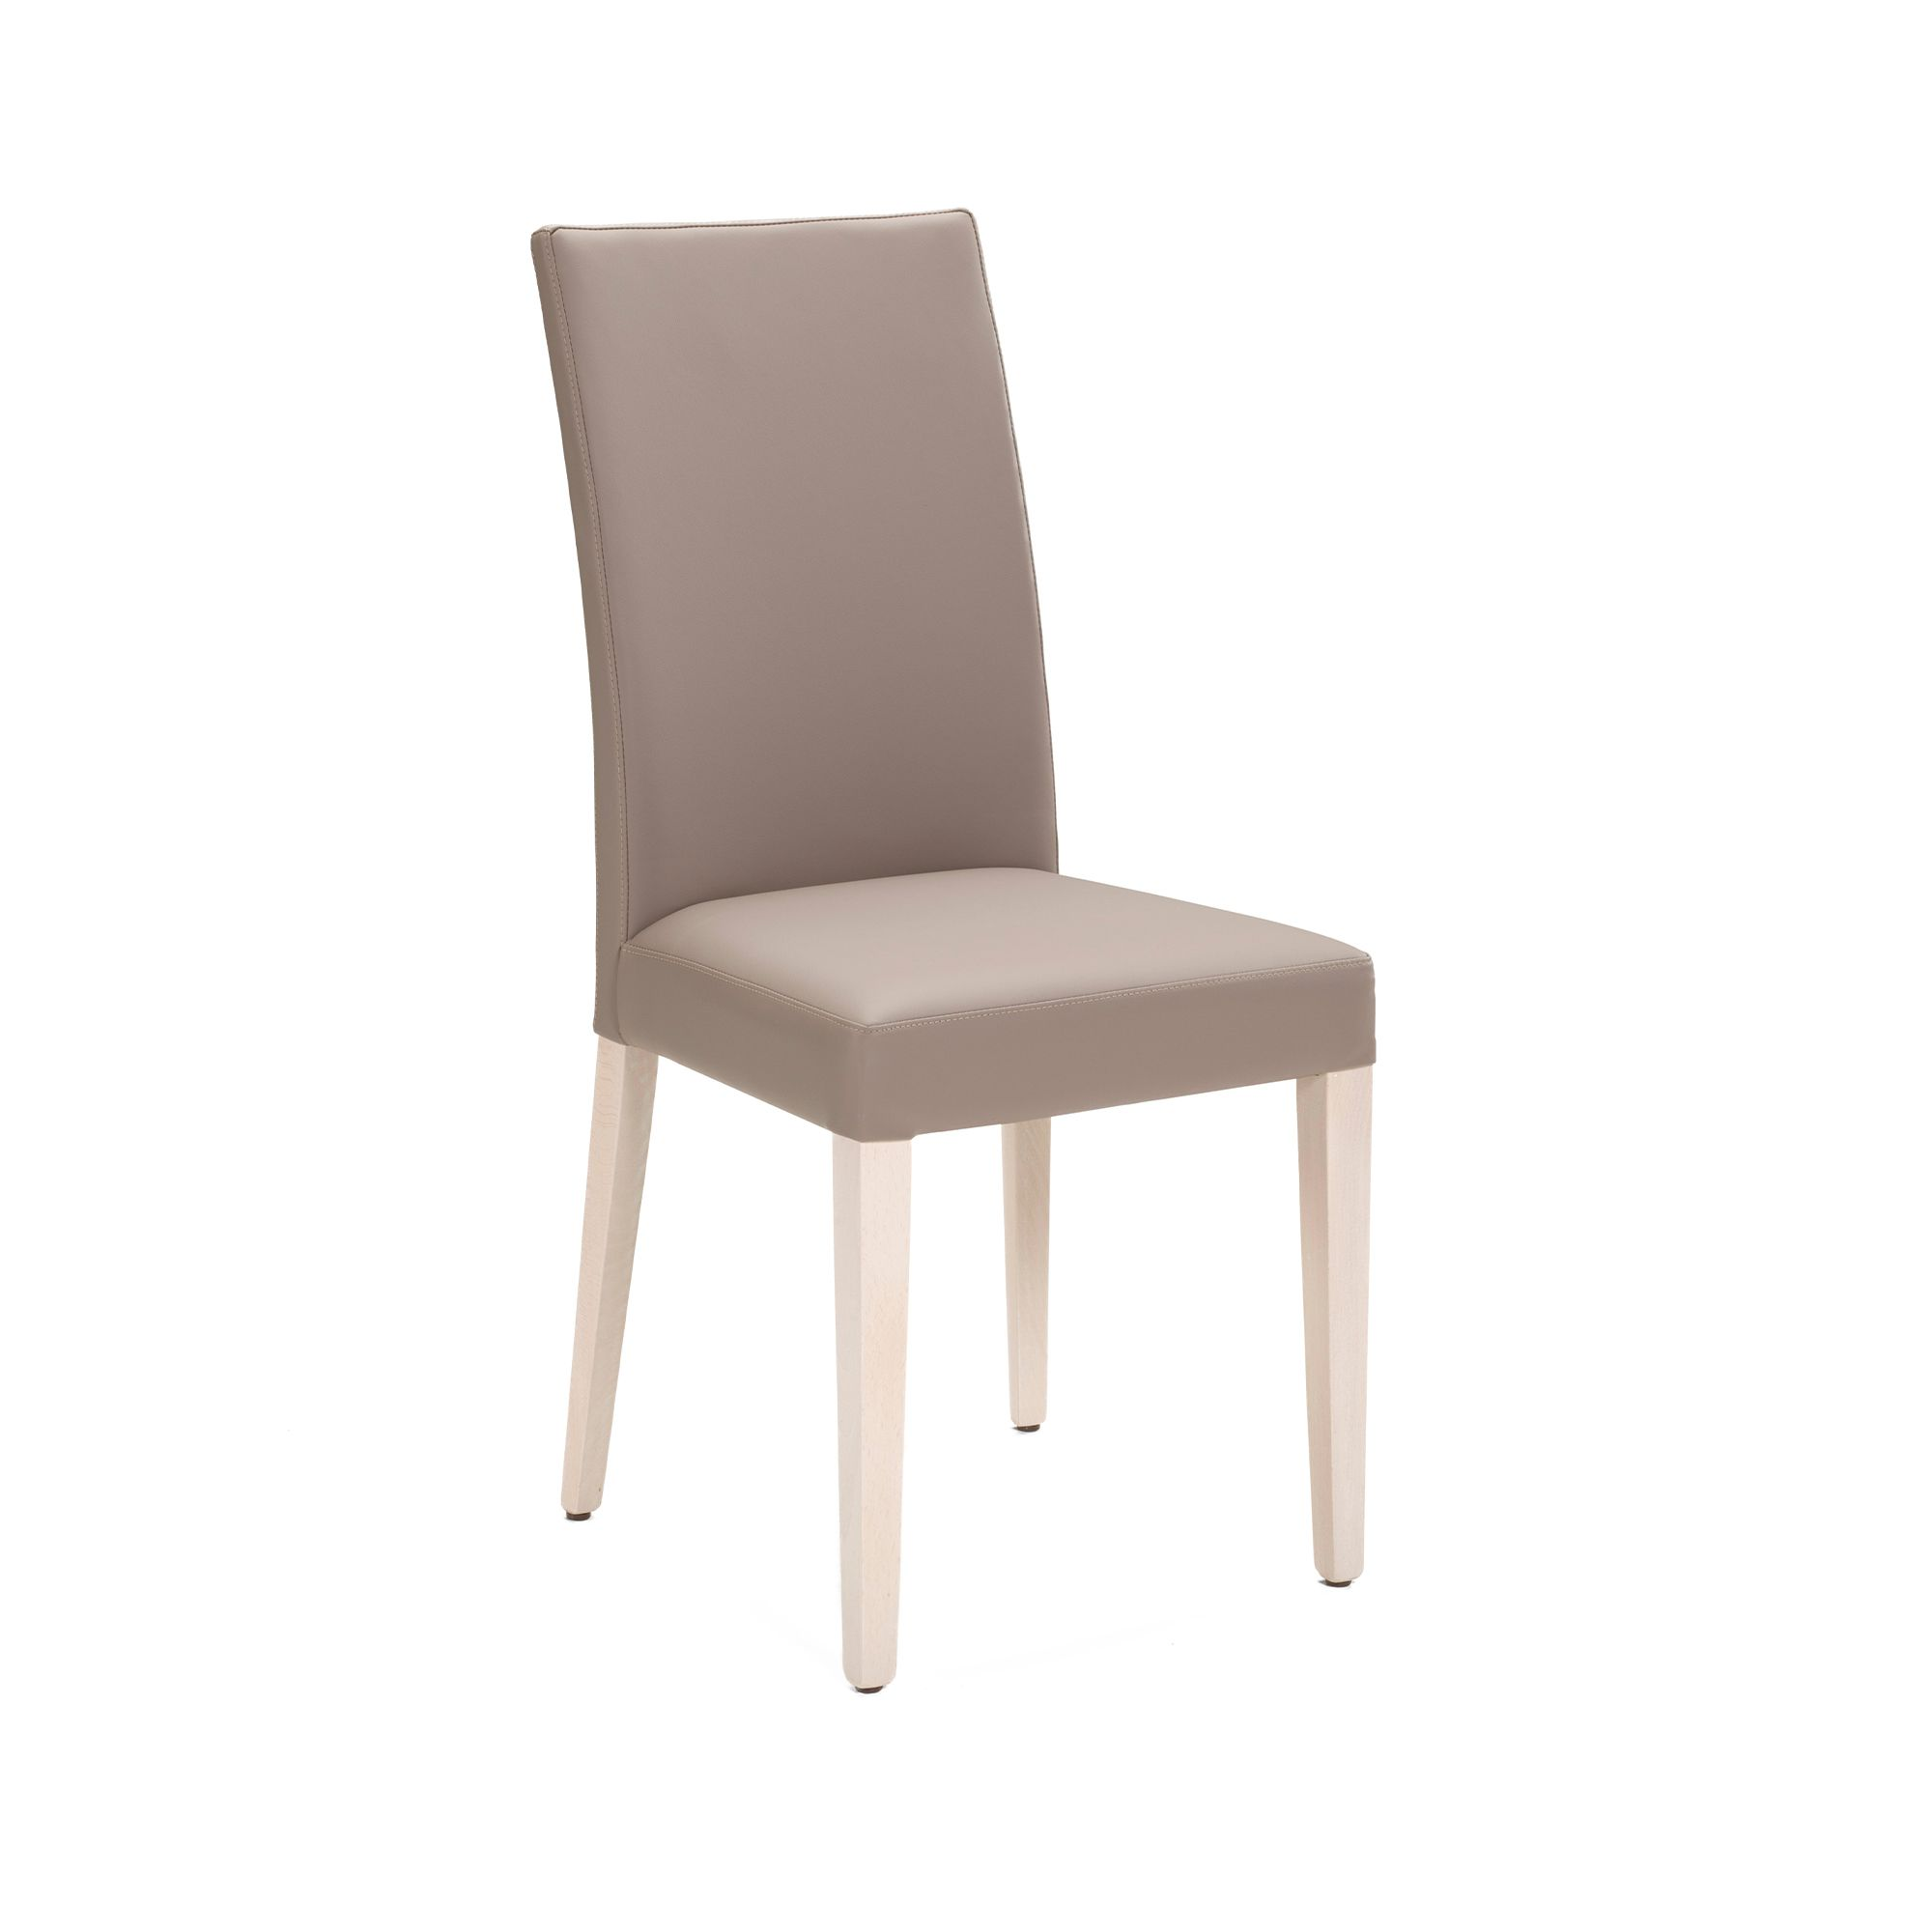 Model 215 chair in modern Style